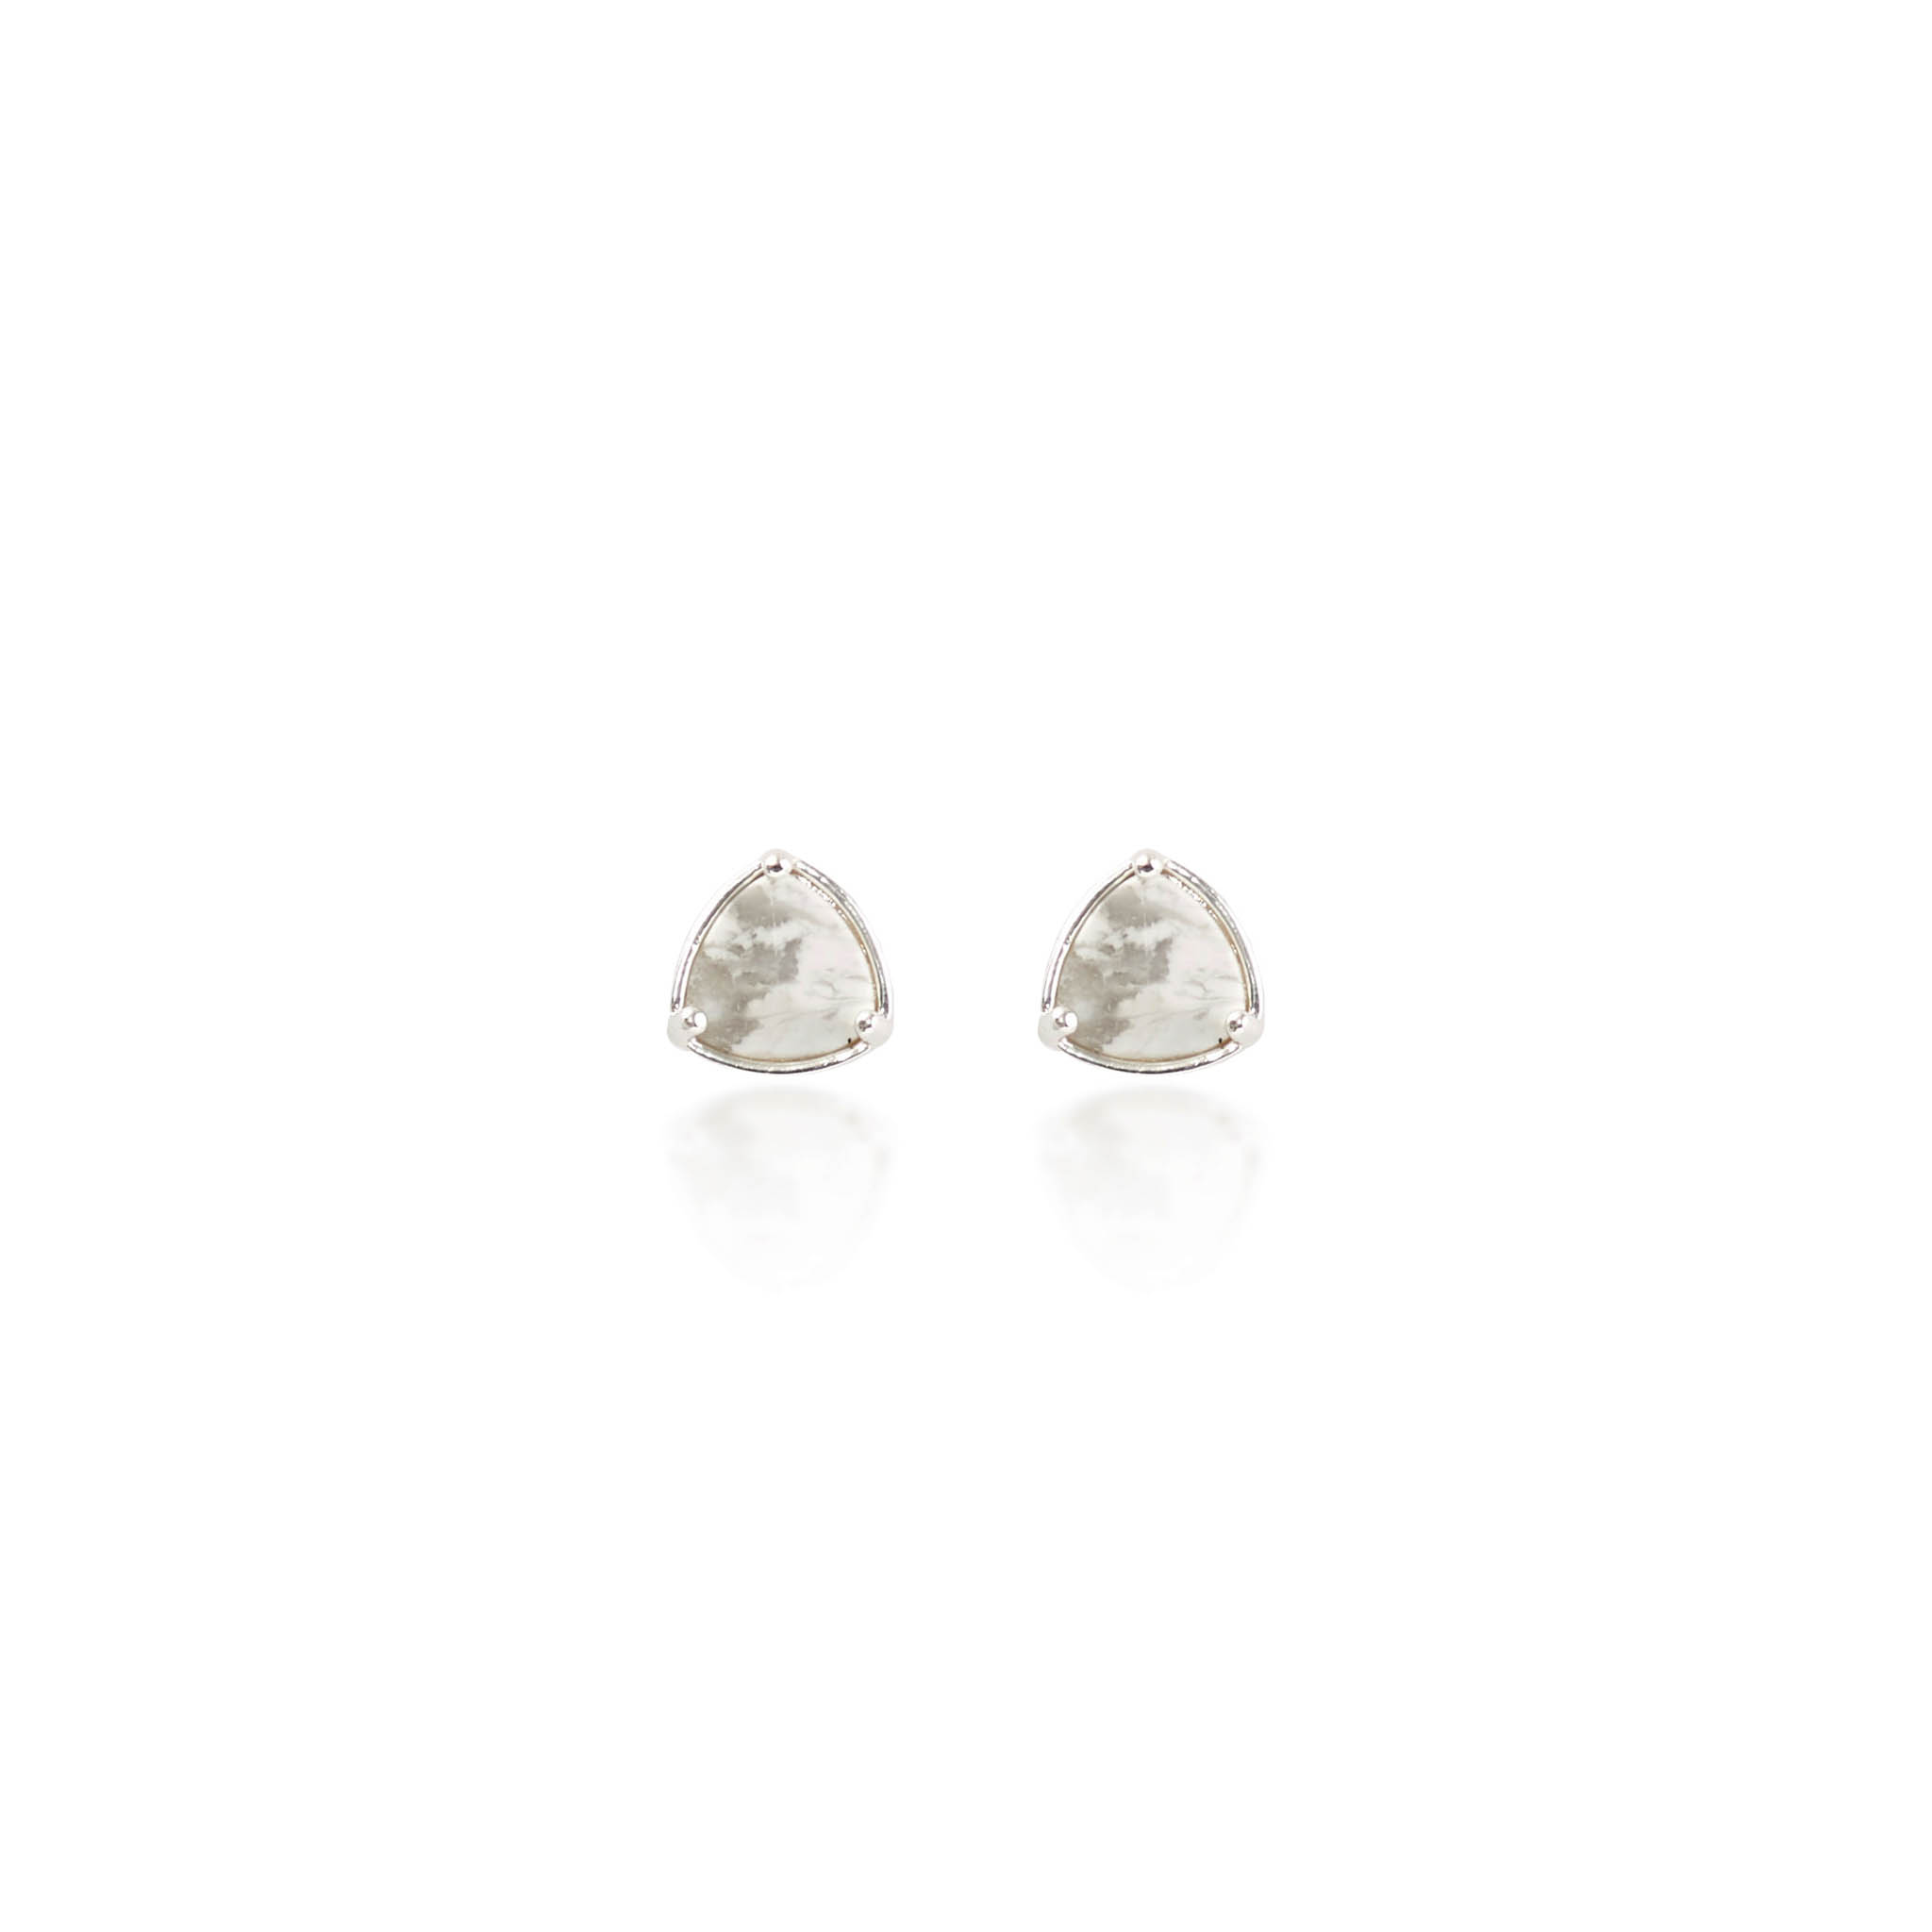 crystals product hr swarovski stud earrings gemnation jewellery